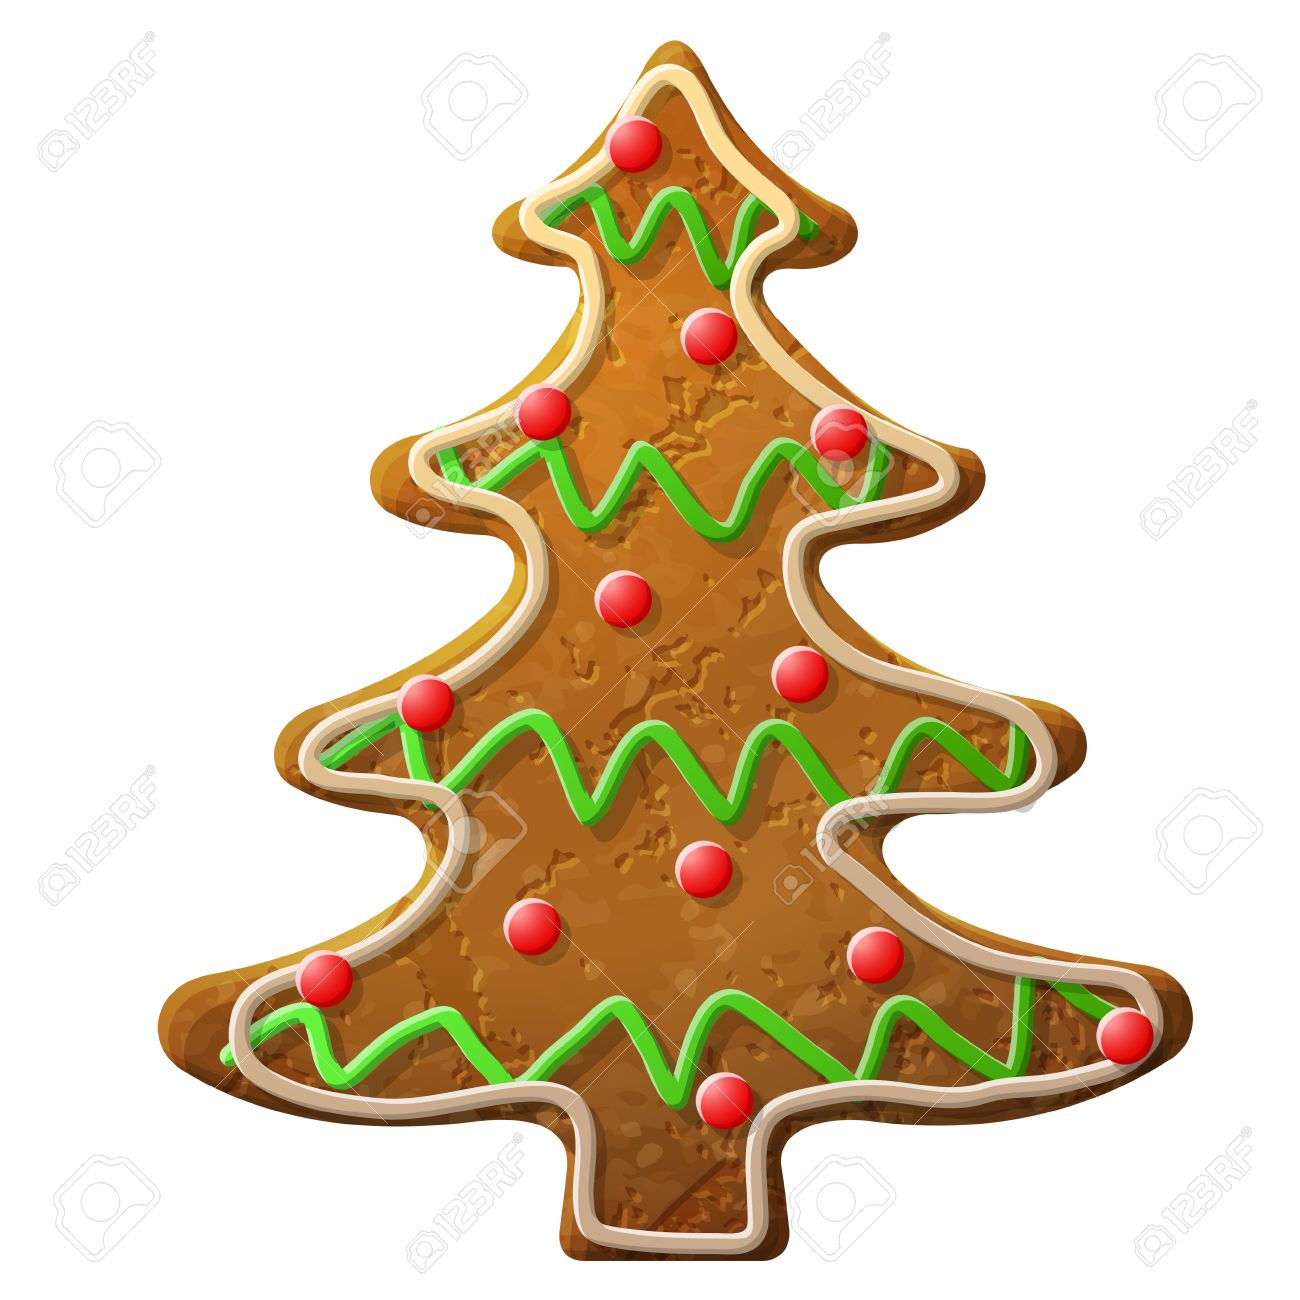 Gingerbread Christmas Tree.Gingerbread Christmas Tree Decorated Colored Icing Holiday Cookie